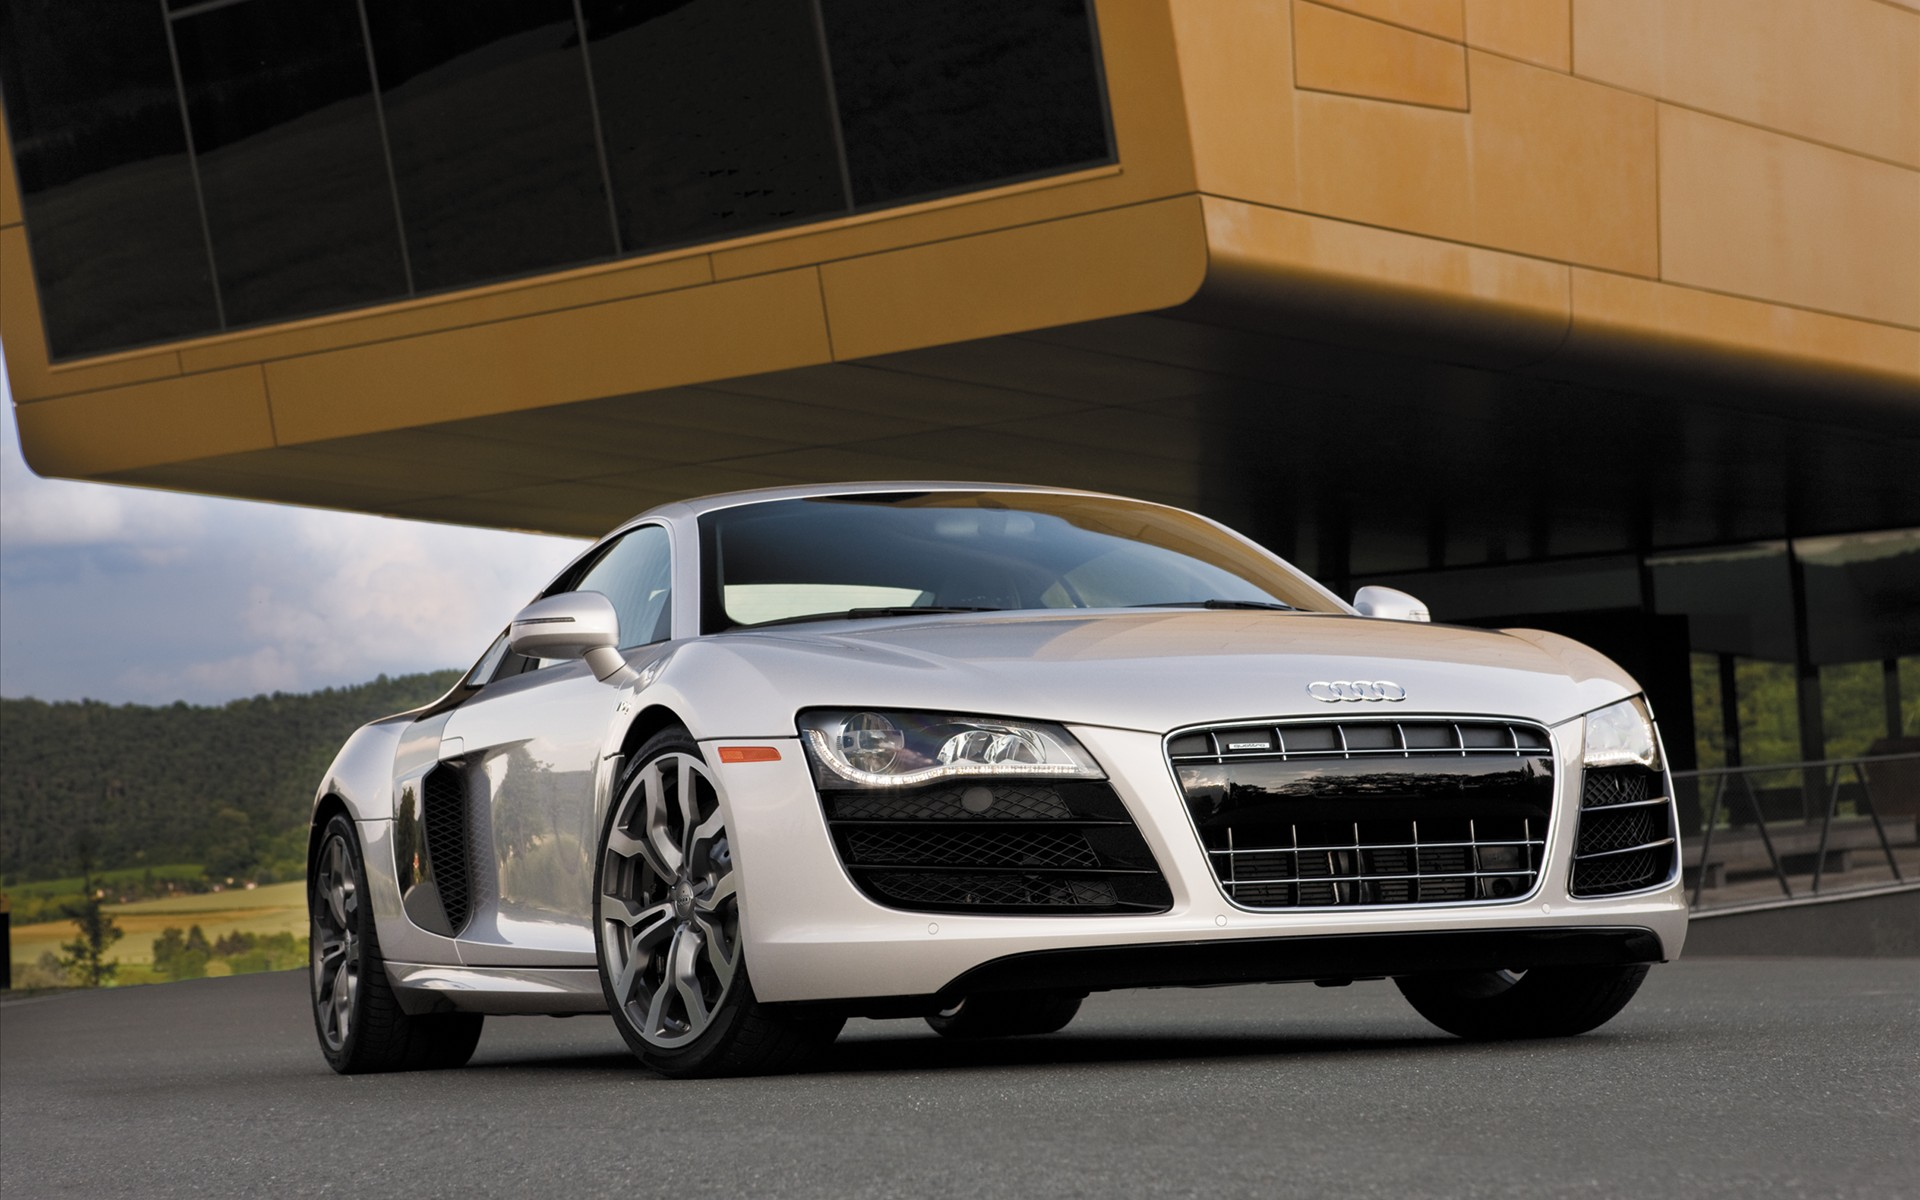 2010 Audi R8 V10 2 Wallpapers HD Wallpapers 1920x1200